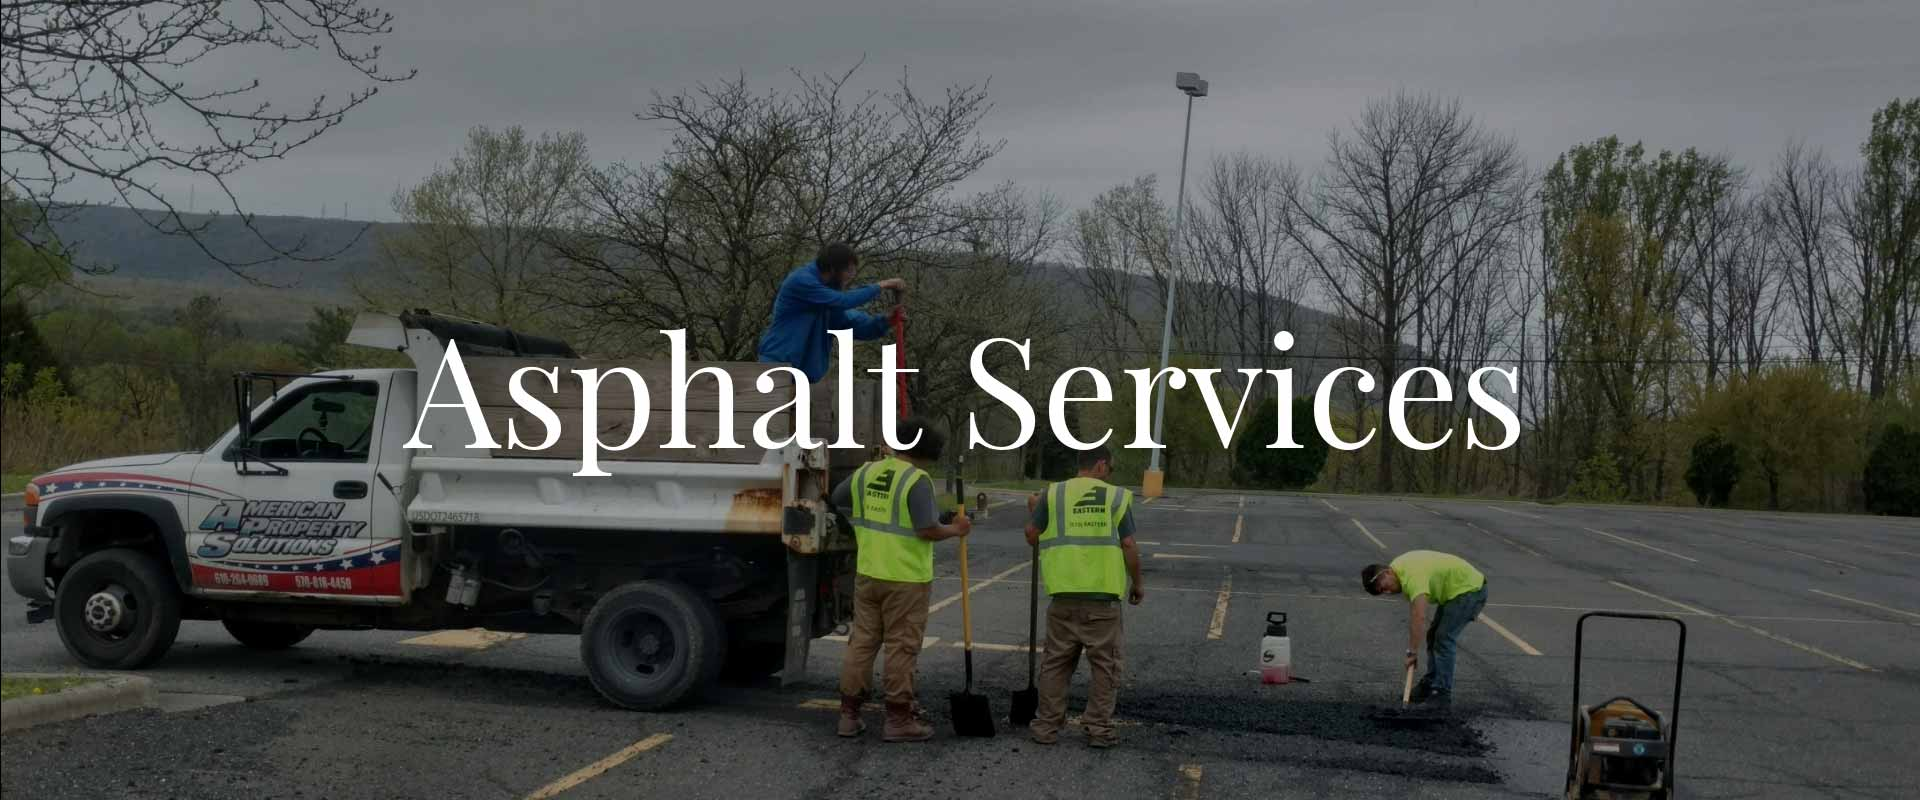 asphalt-services-header